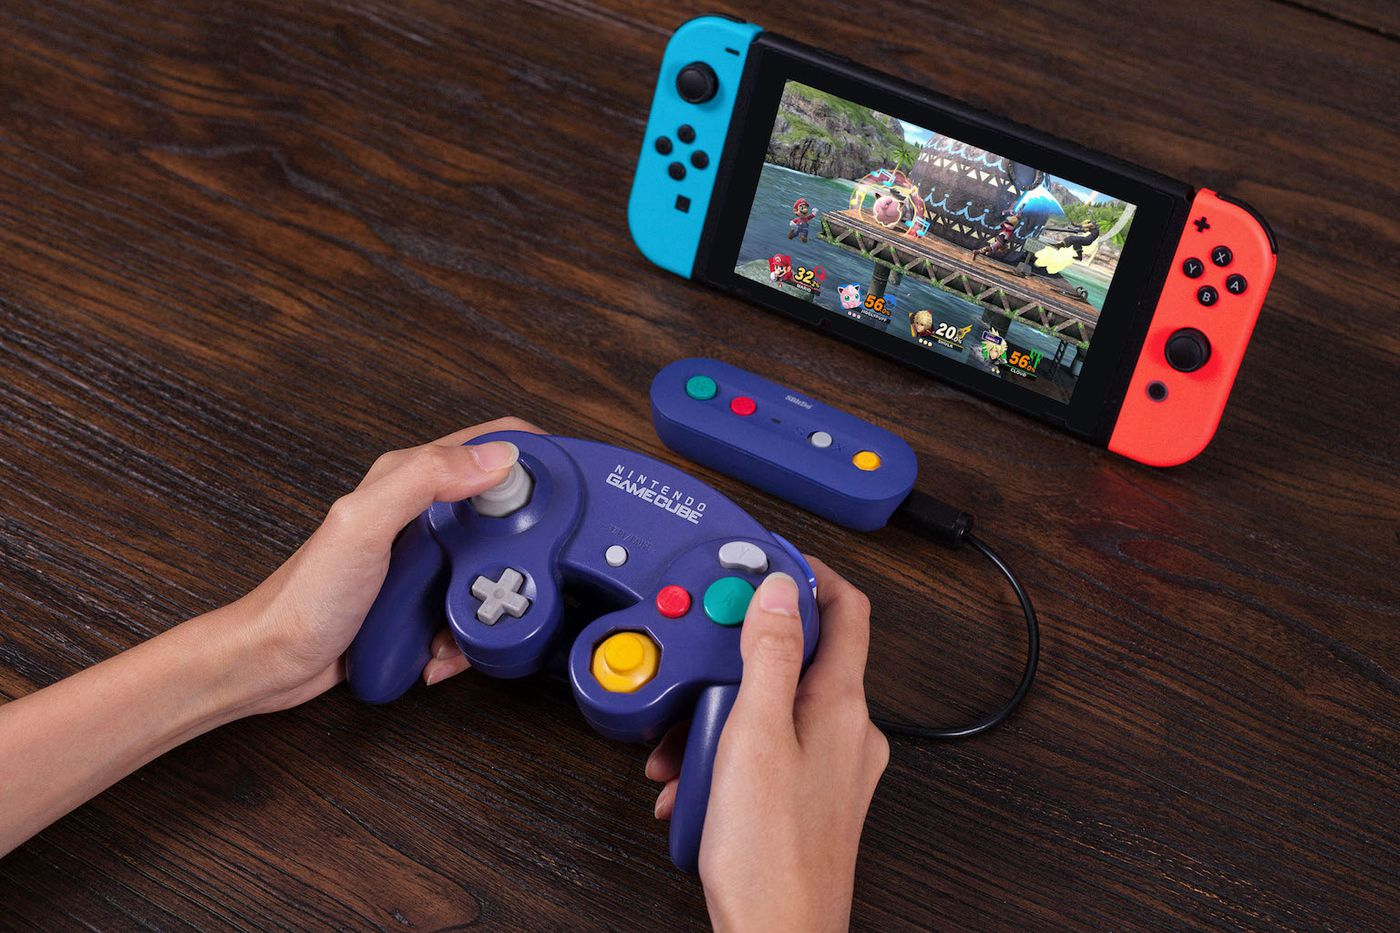 8BitDo's adapter is the best way to play Smash Bros  Ultimate